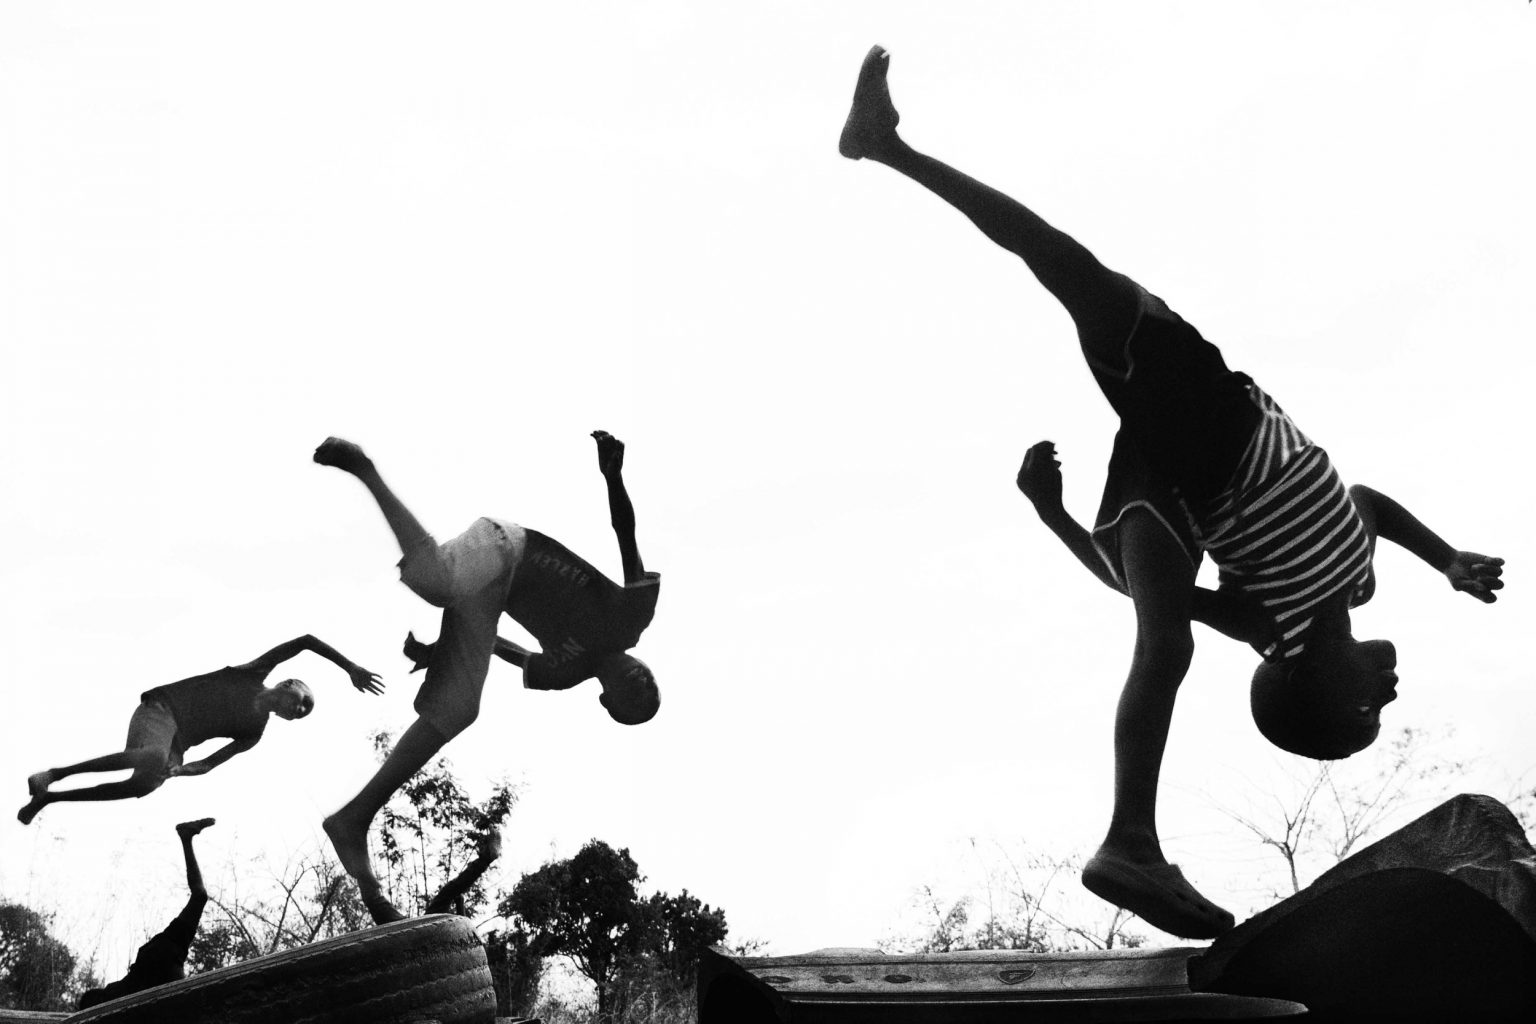 Three boys practice aerial flips using tires as a springboard. Lusaka, Zambia, 2019